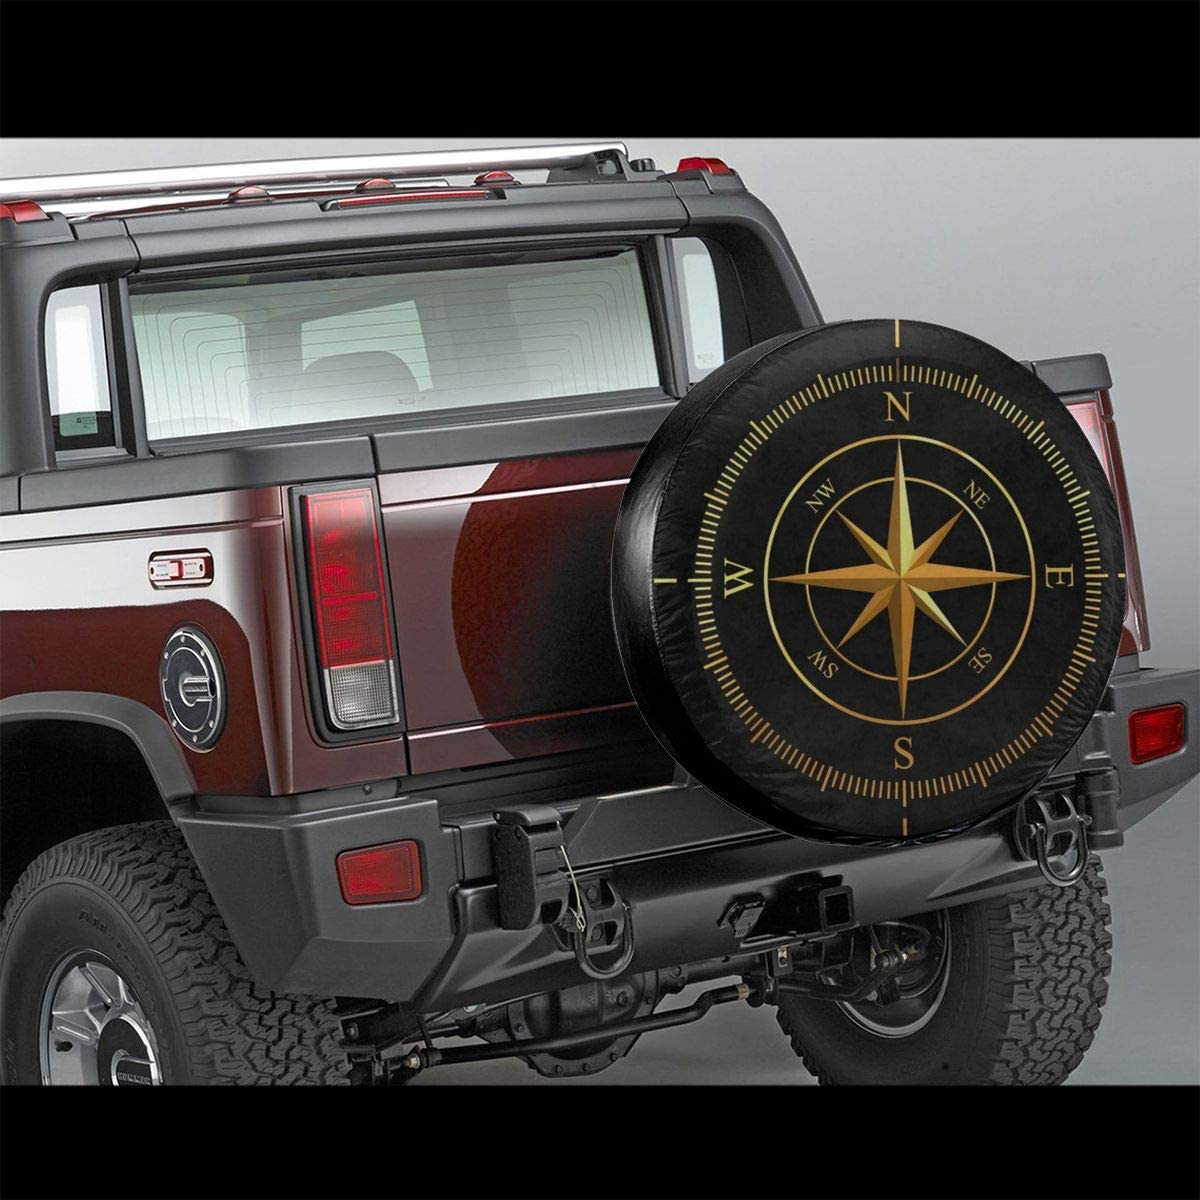 RV Golden Compass Black Spare Tire Cover UV Sun Wheel Covers Fit for Jeep,Trailer SUV and Many Vehicle 16 Inch